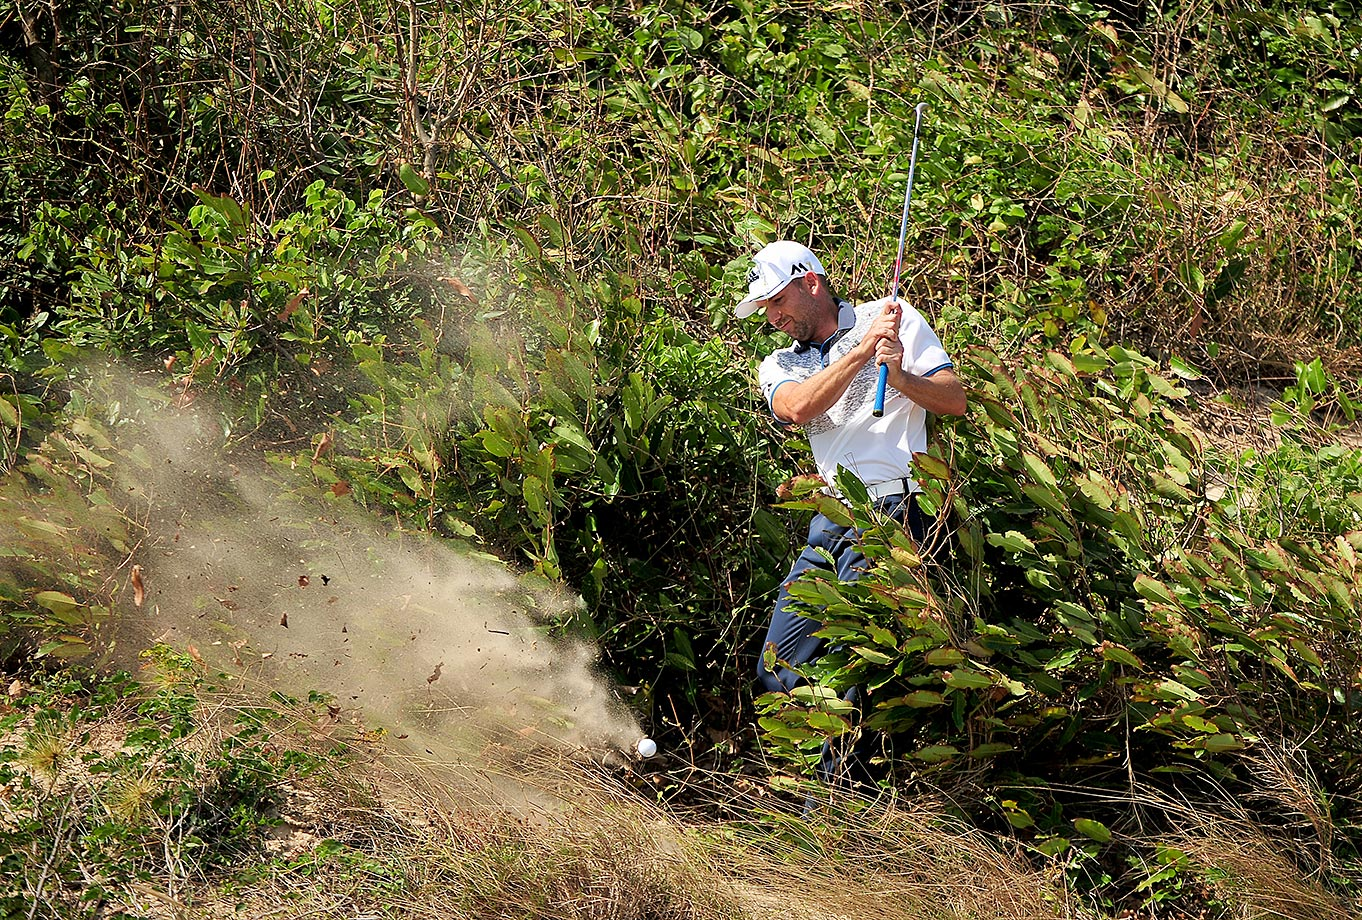 Sergio Garcia plays a shot during round two of the Ho Tram Open in Vietnam.